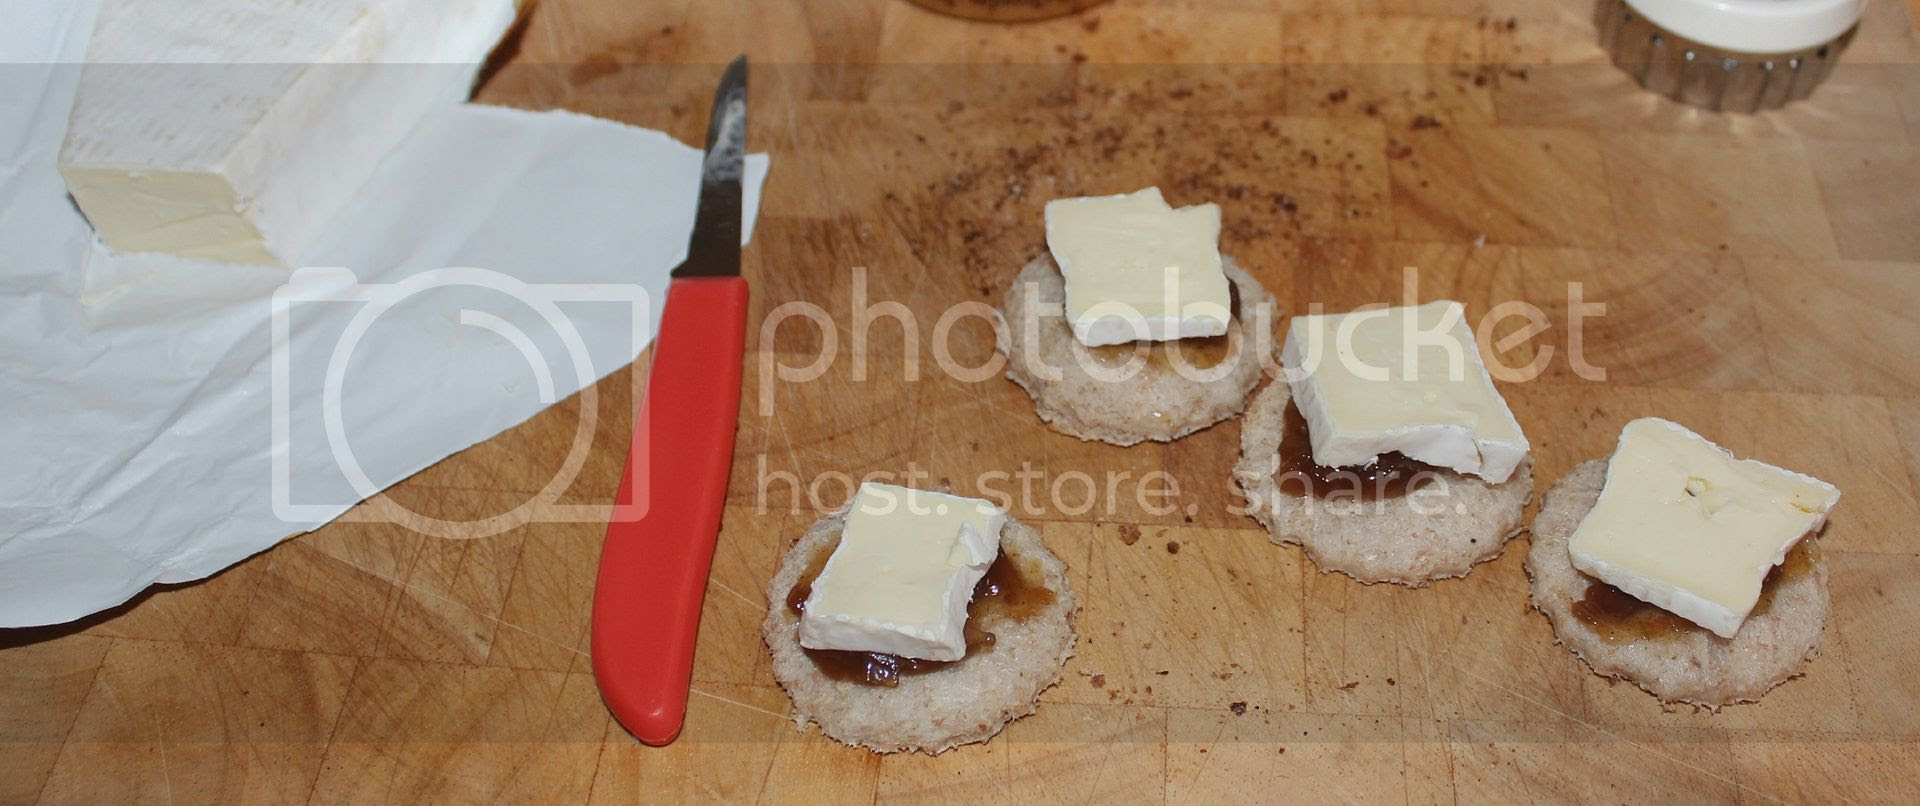 making posh cheese on toast